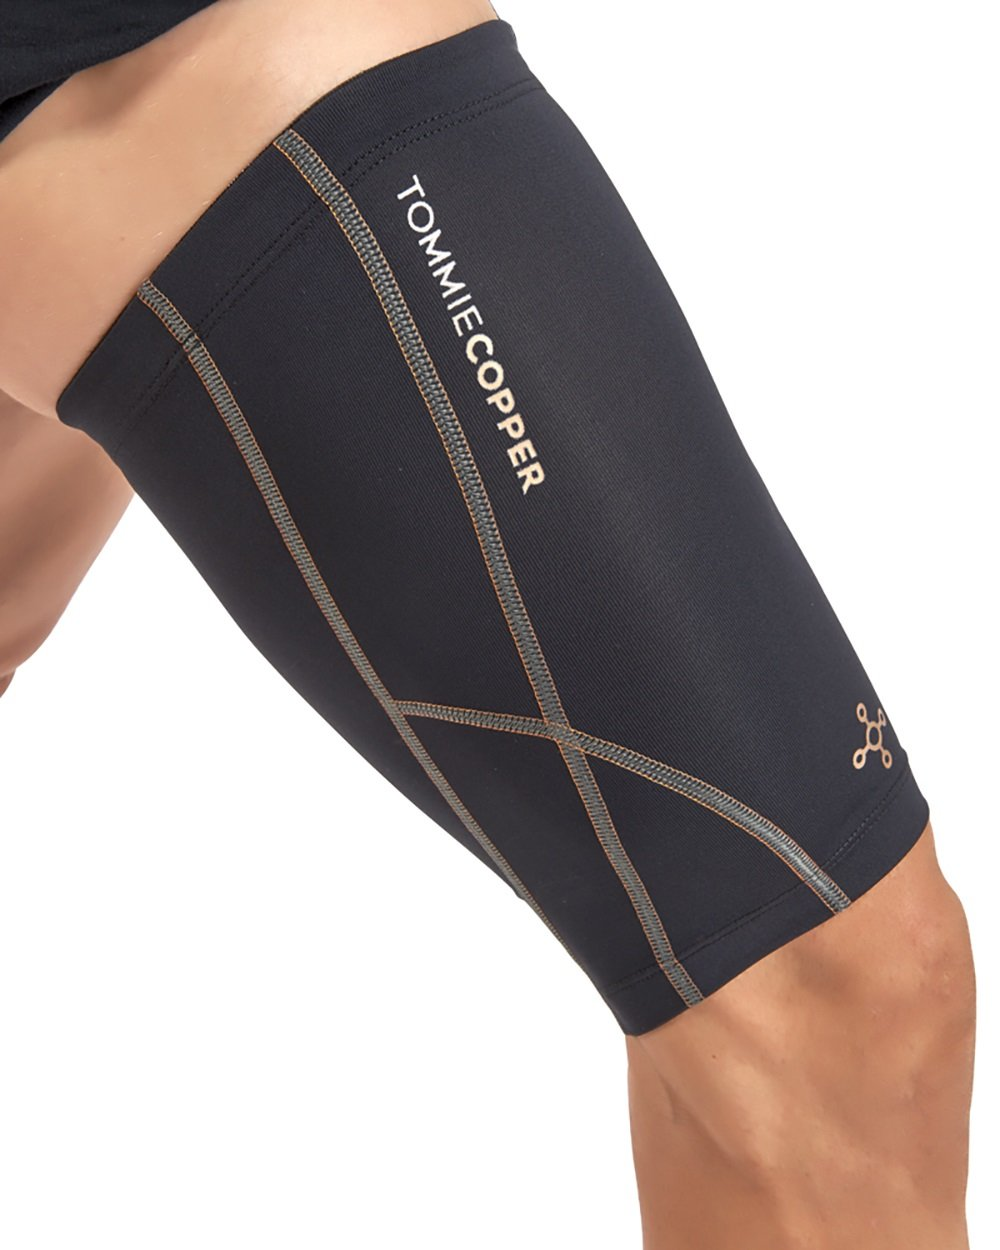 Tommie Copper Men's Performance Quad Sleeves 2.0, Small, Black by Tommie Copper (Image #2)